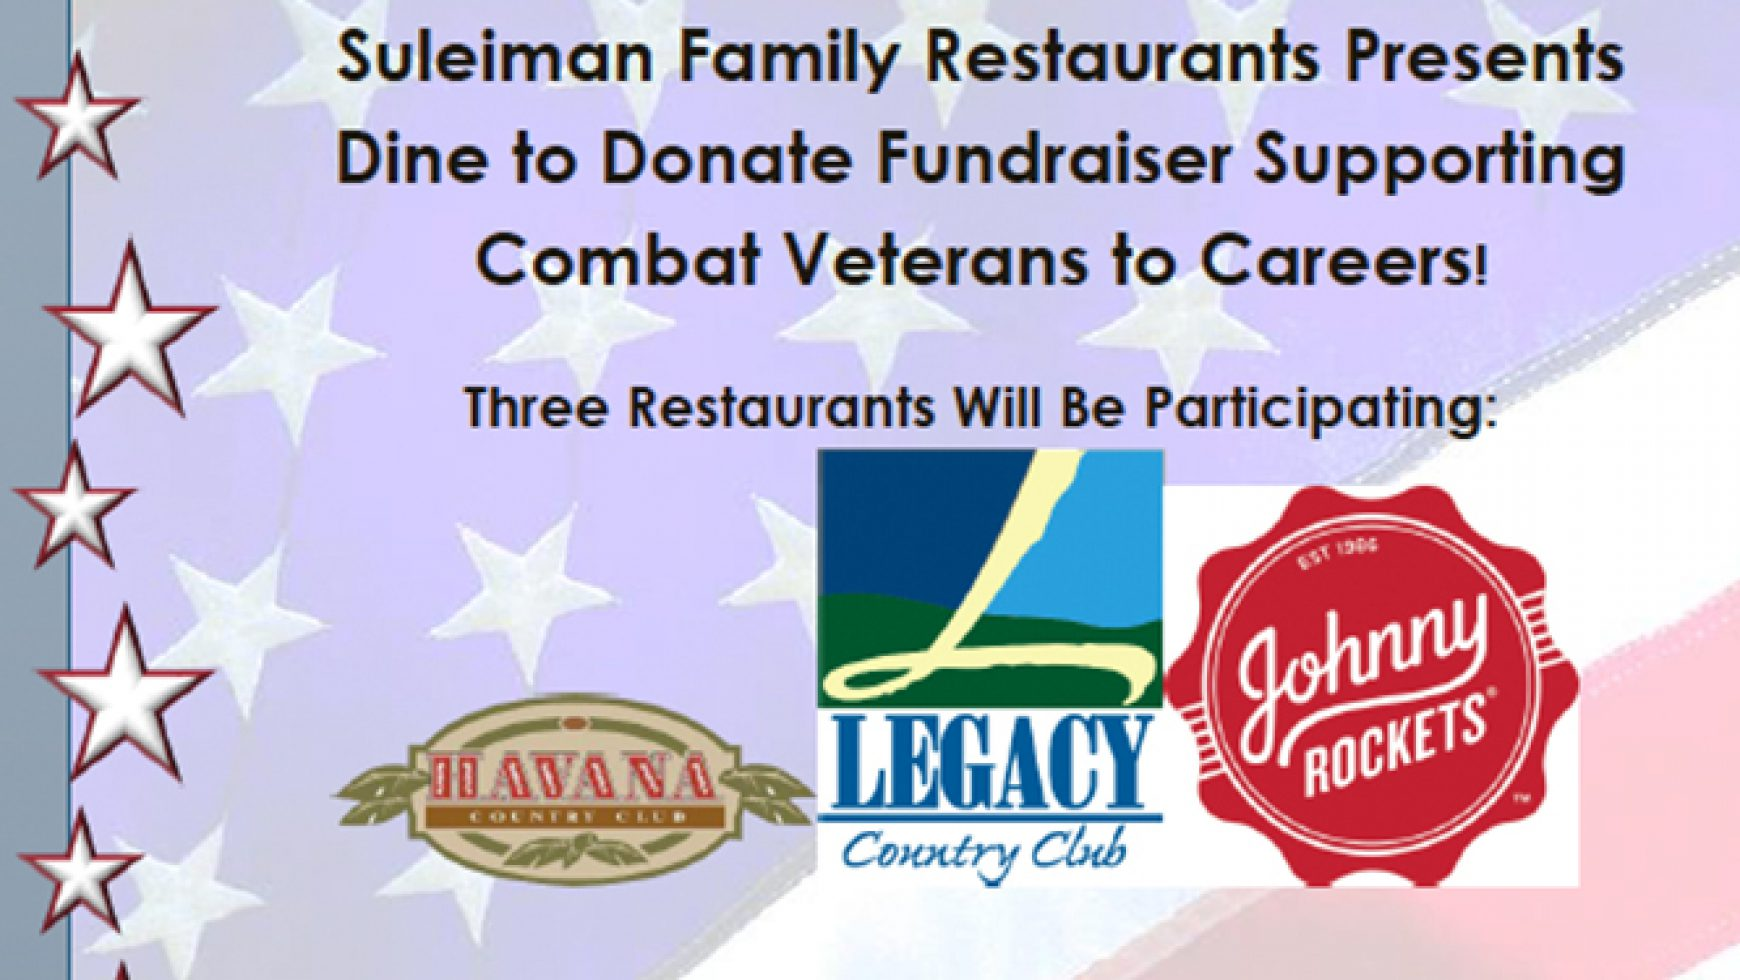 Suleiman Family Restaurants Hosts Dine to Donate Events Benefiting CVC